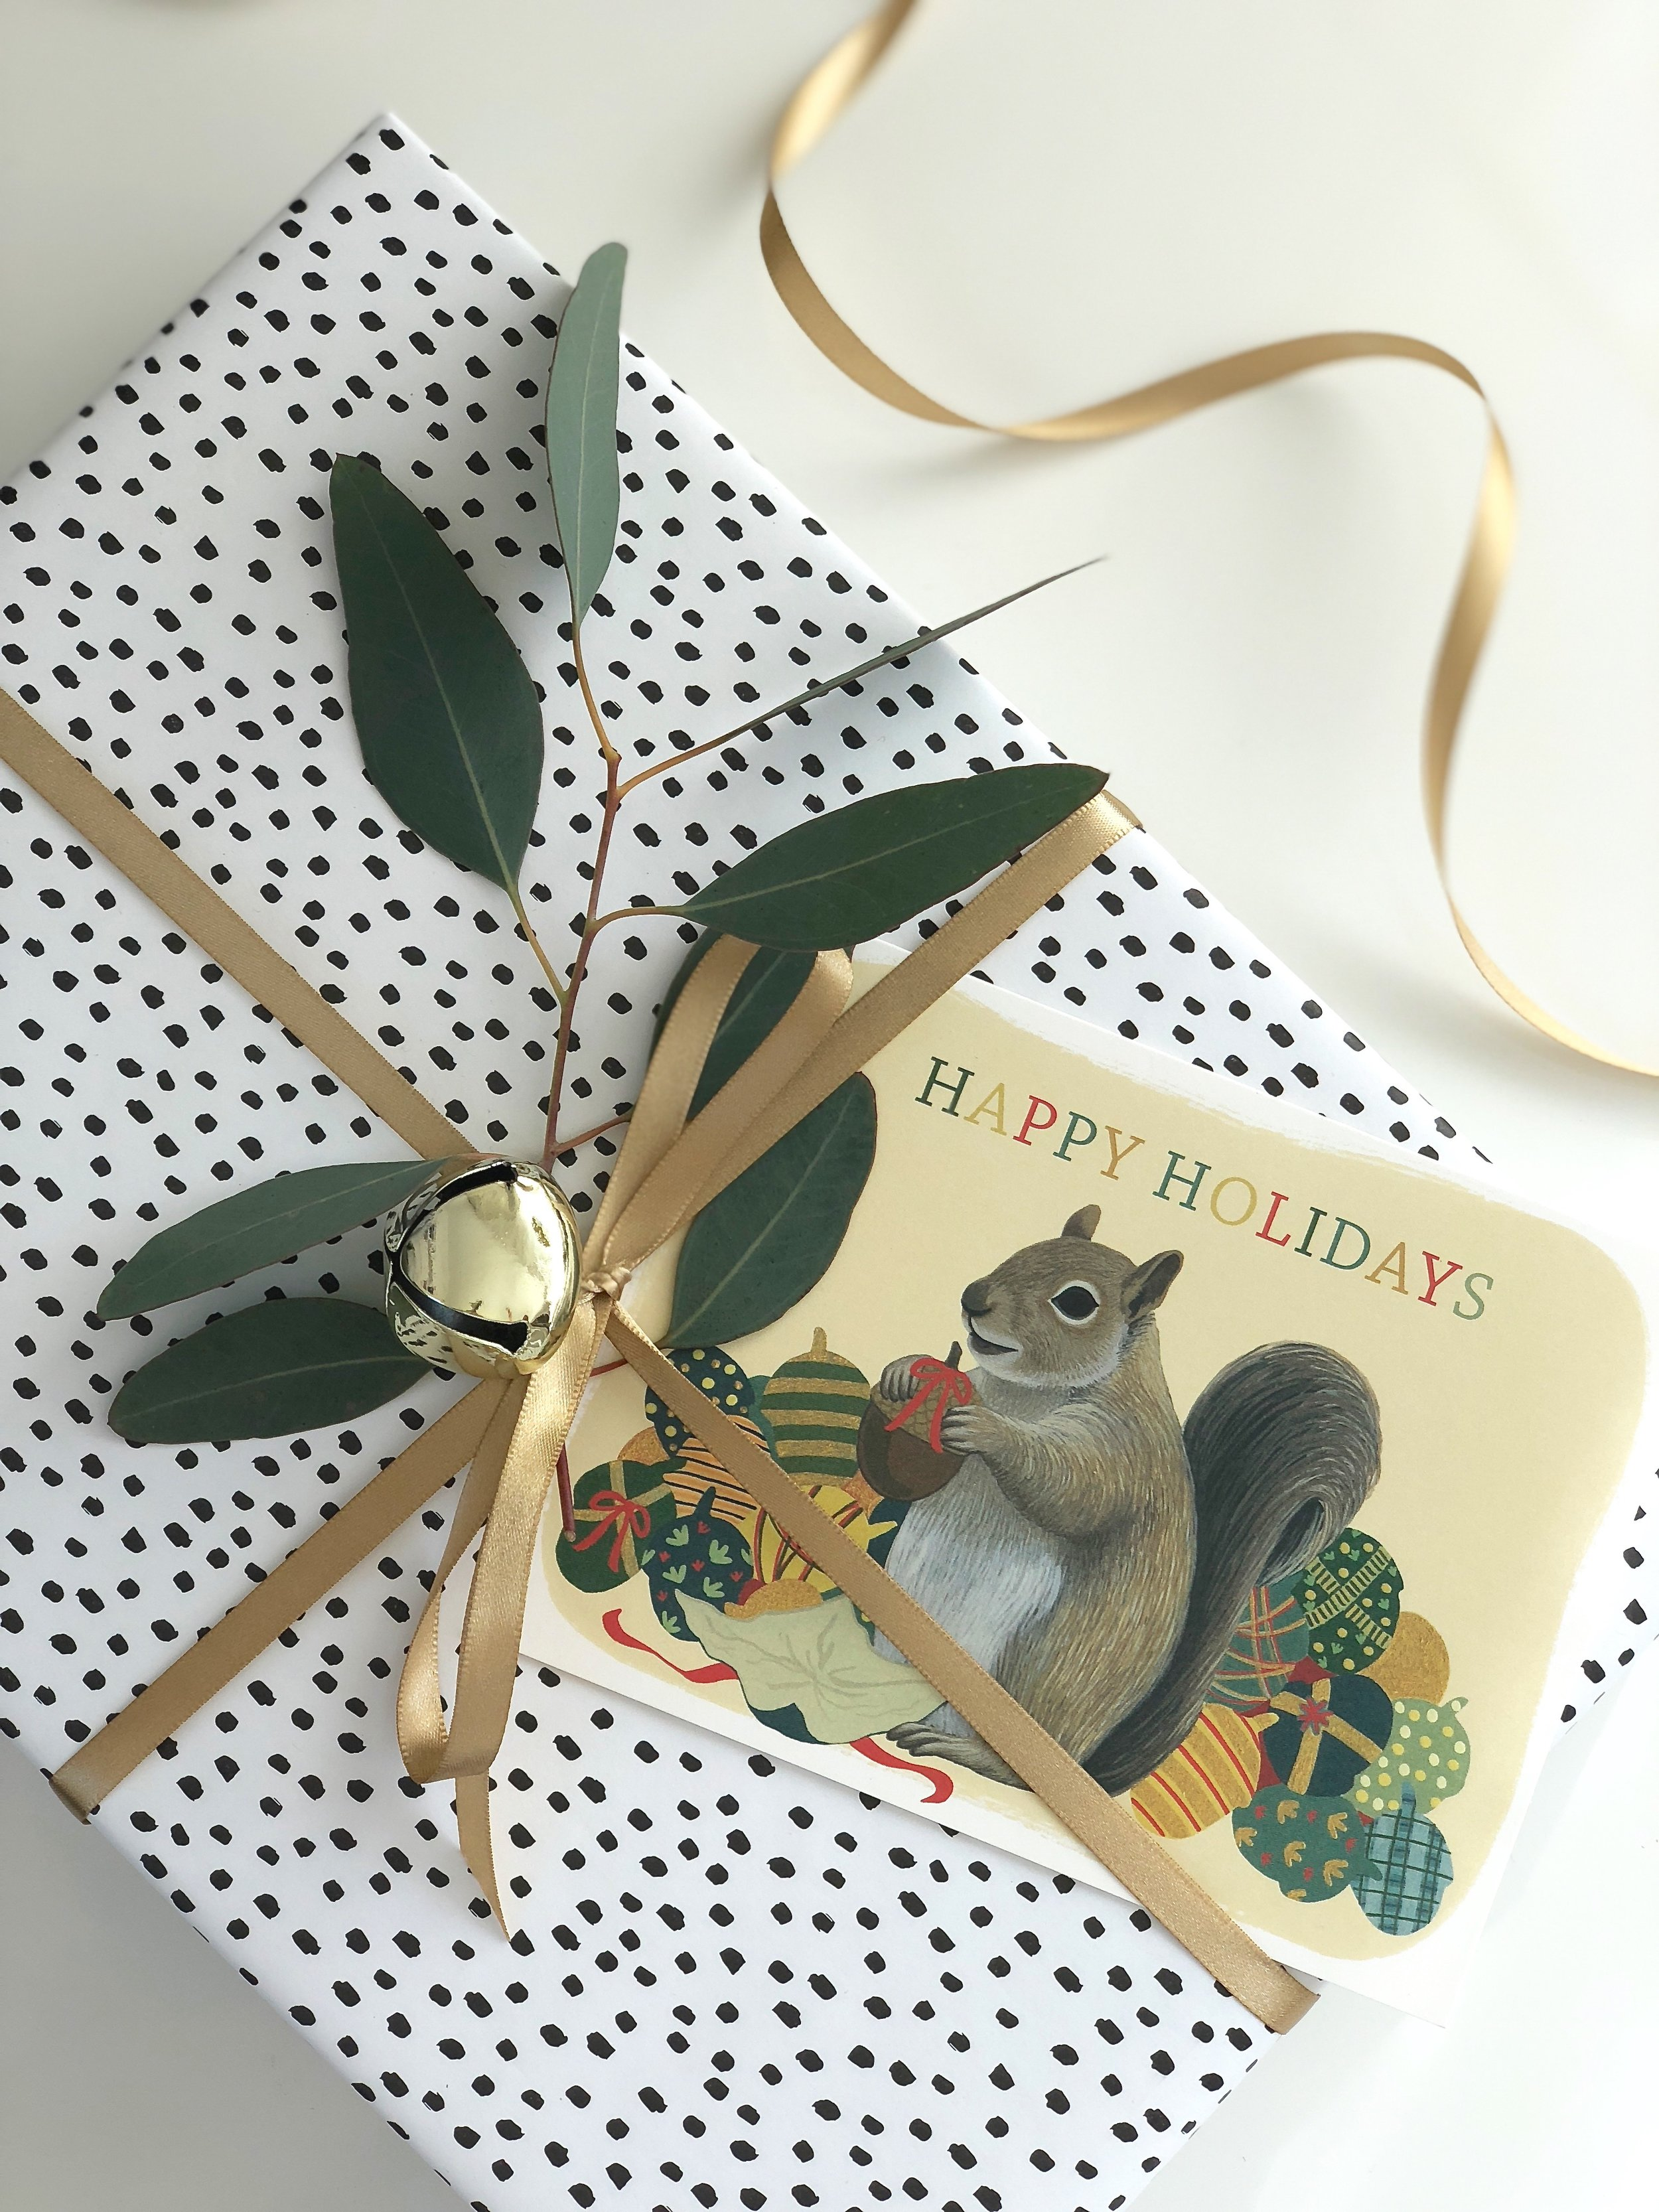 Etsy Featured Shop - By Sharon Steele of the Etsy BlogWe were thrilled to chat with Etsy in the Fall of 2018 to share the back story of how Yeppie Paper came to be, the process behind our cards, and why we love what we do. It was so nice to sit down to discuss our business and reflect on what it really means to us. Click here to check it out!